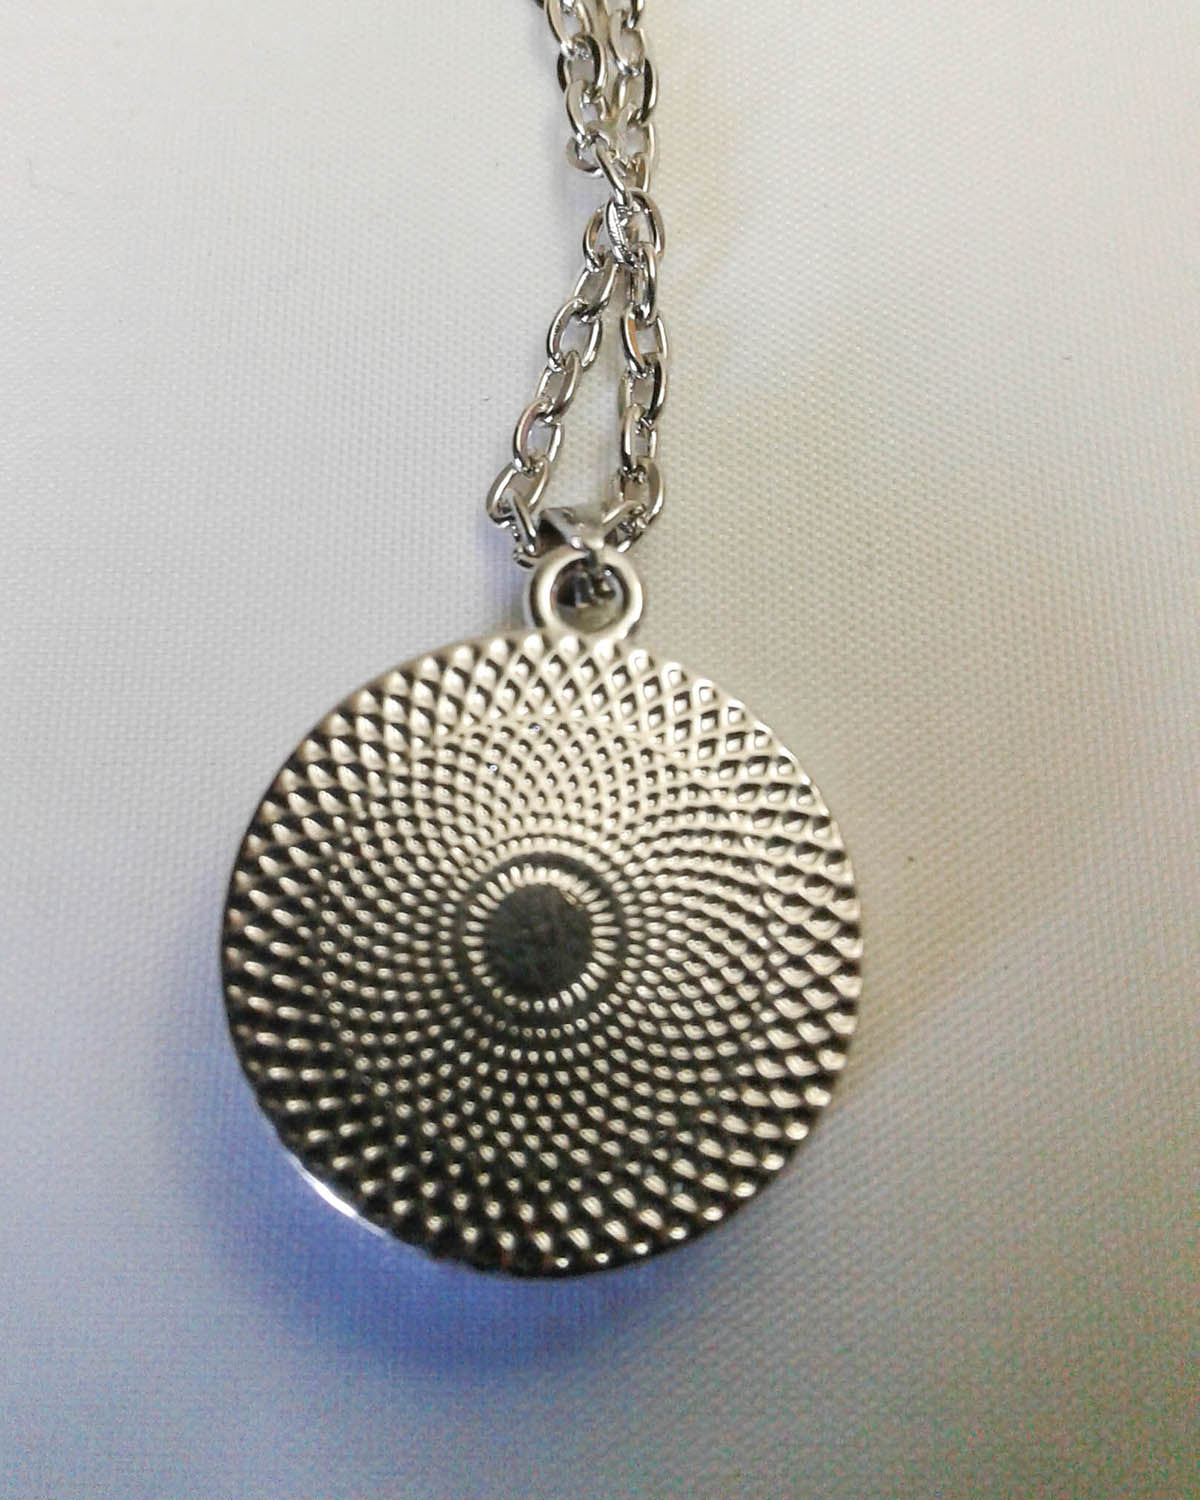 Stainless Steel Oil Diffusing Leaf Pendant